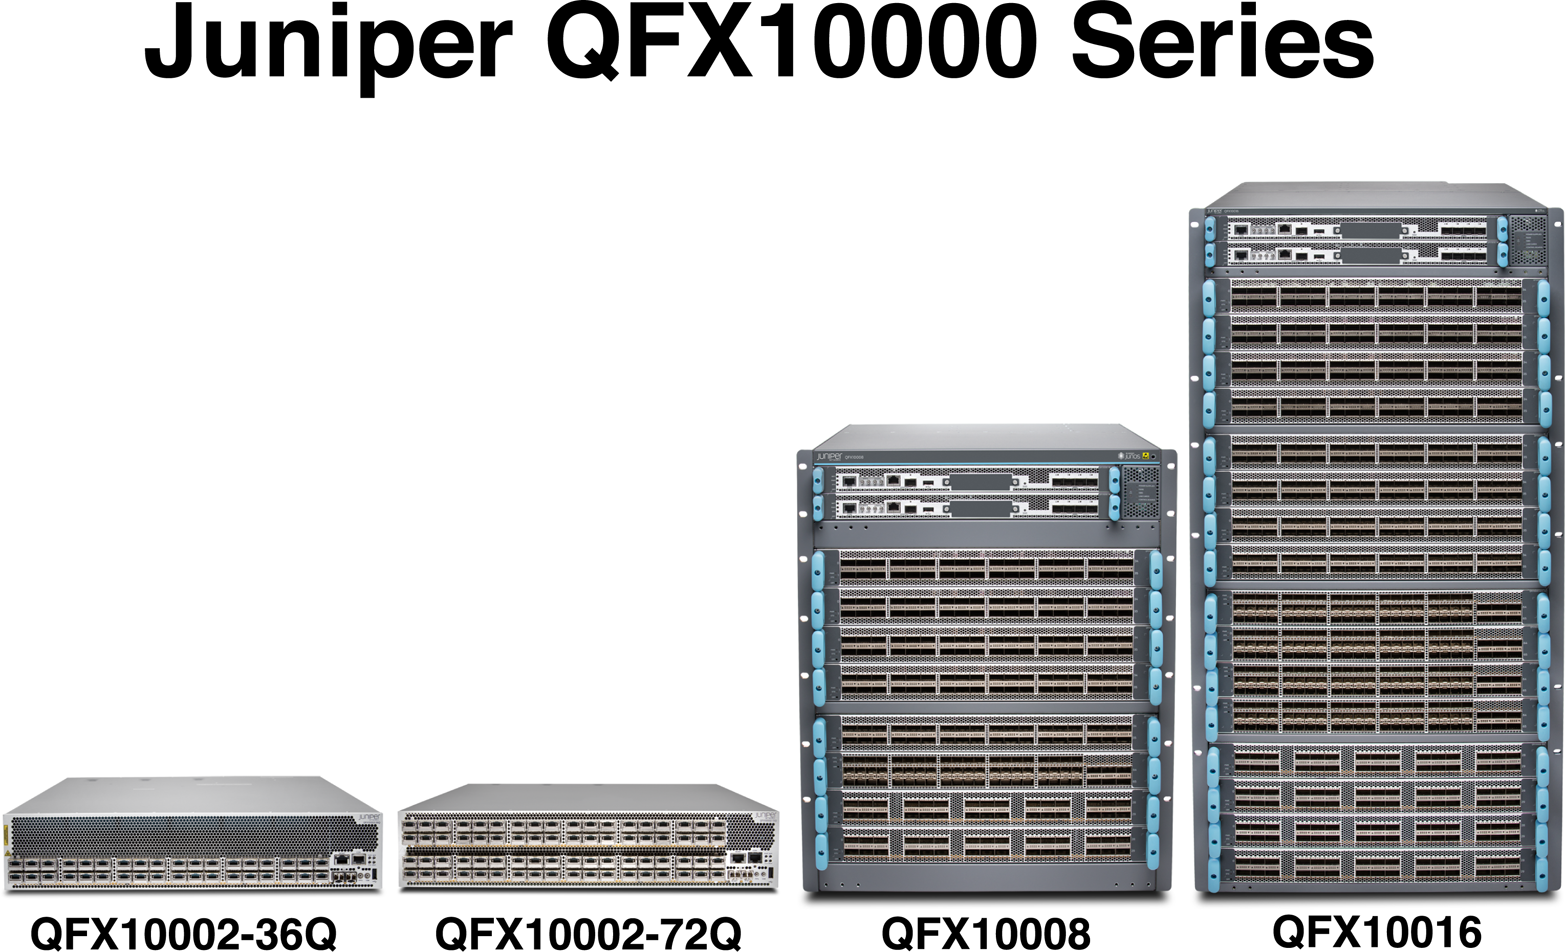 1  Juniper QFX10000 Hardware Architecture - Juniper QFX10000 Series